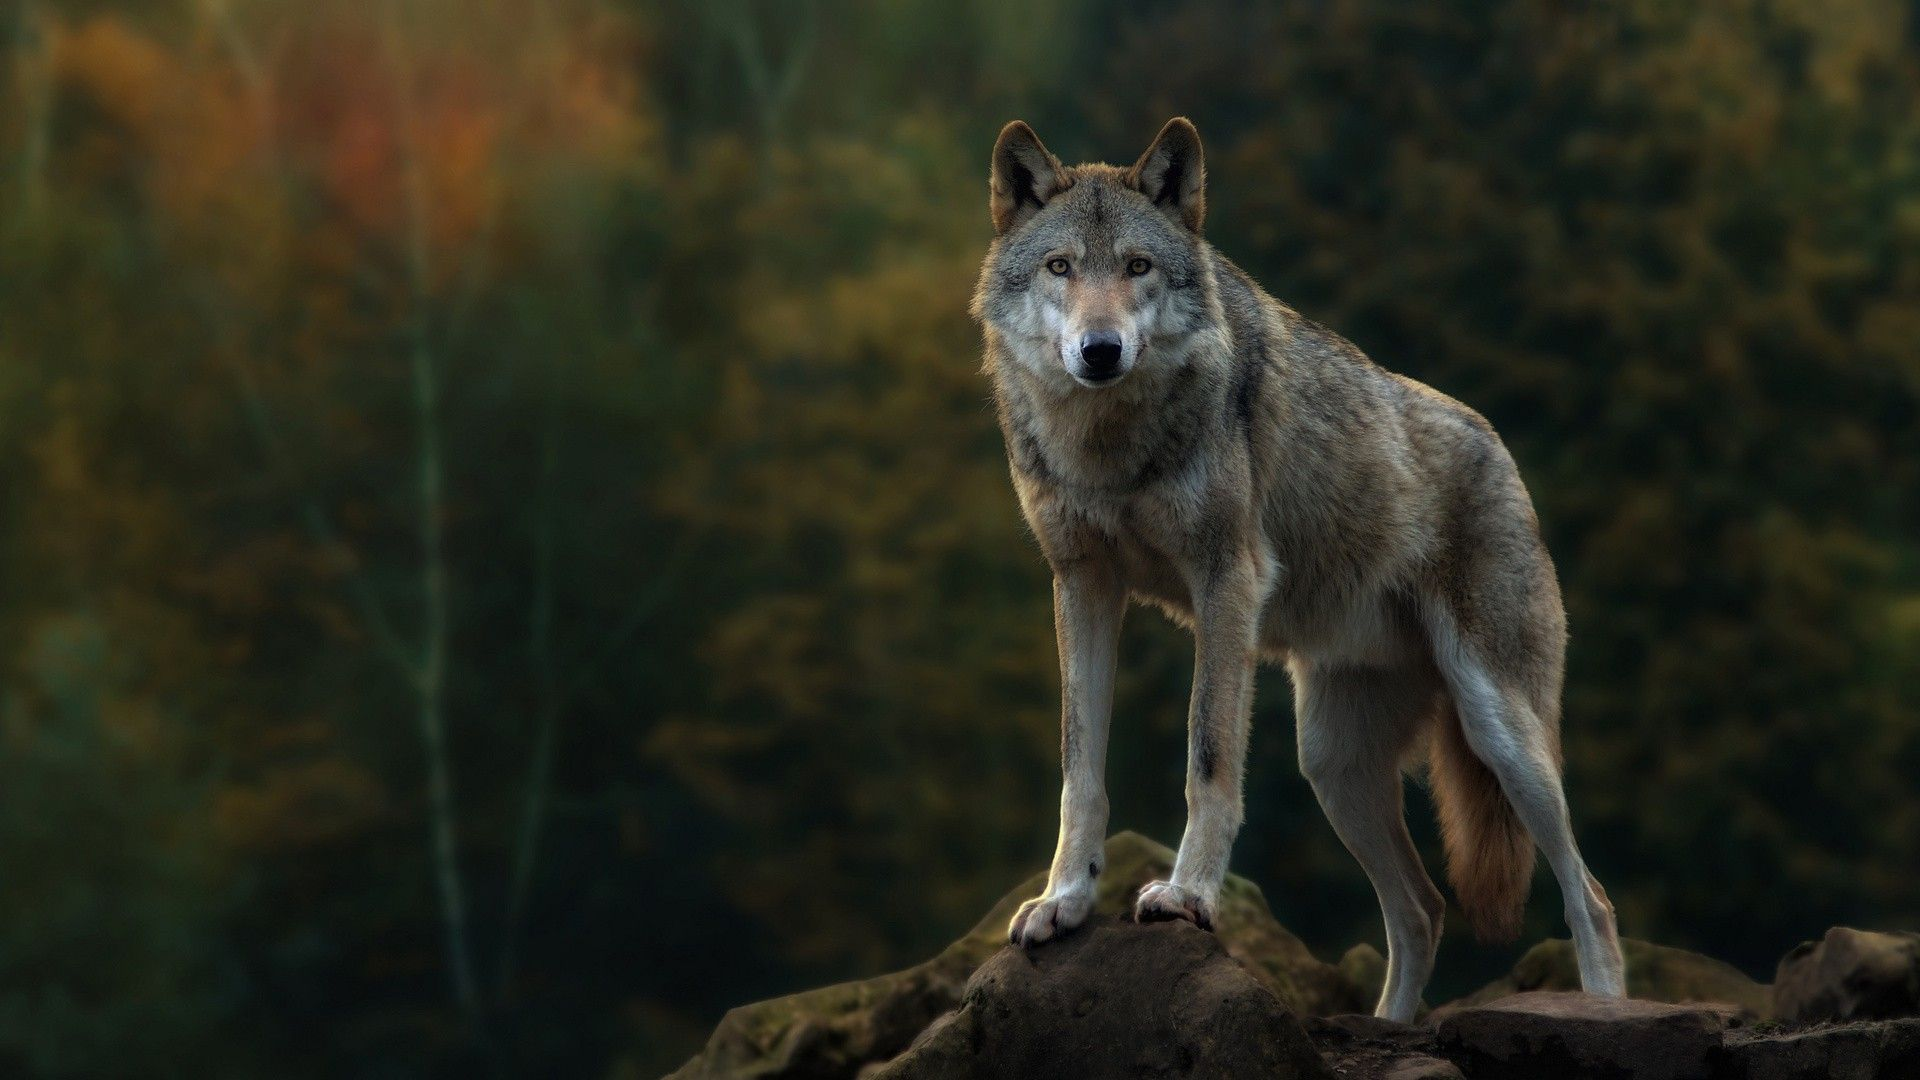 Wolves Wallpapers Hd Resolution Wolf Wallpaper Animals Wolf Photography